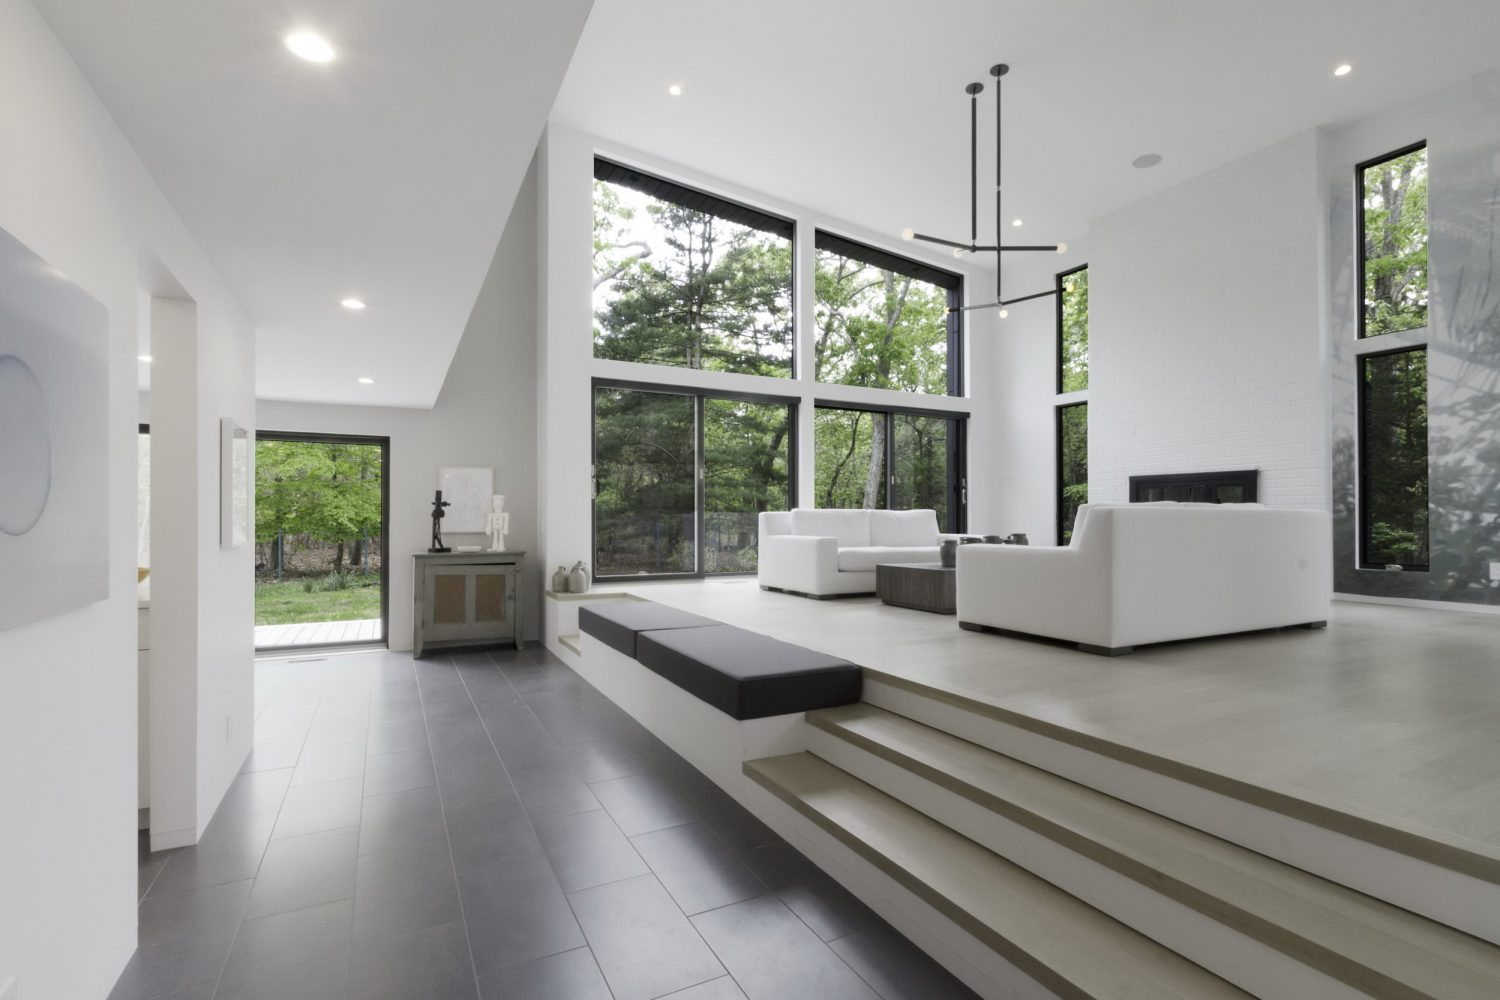 C+S House by AE Superlab